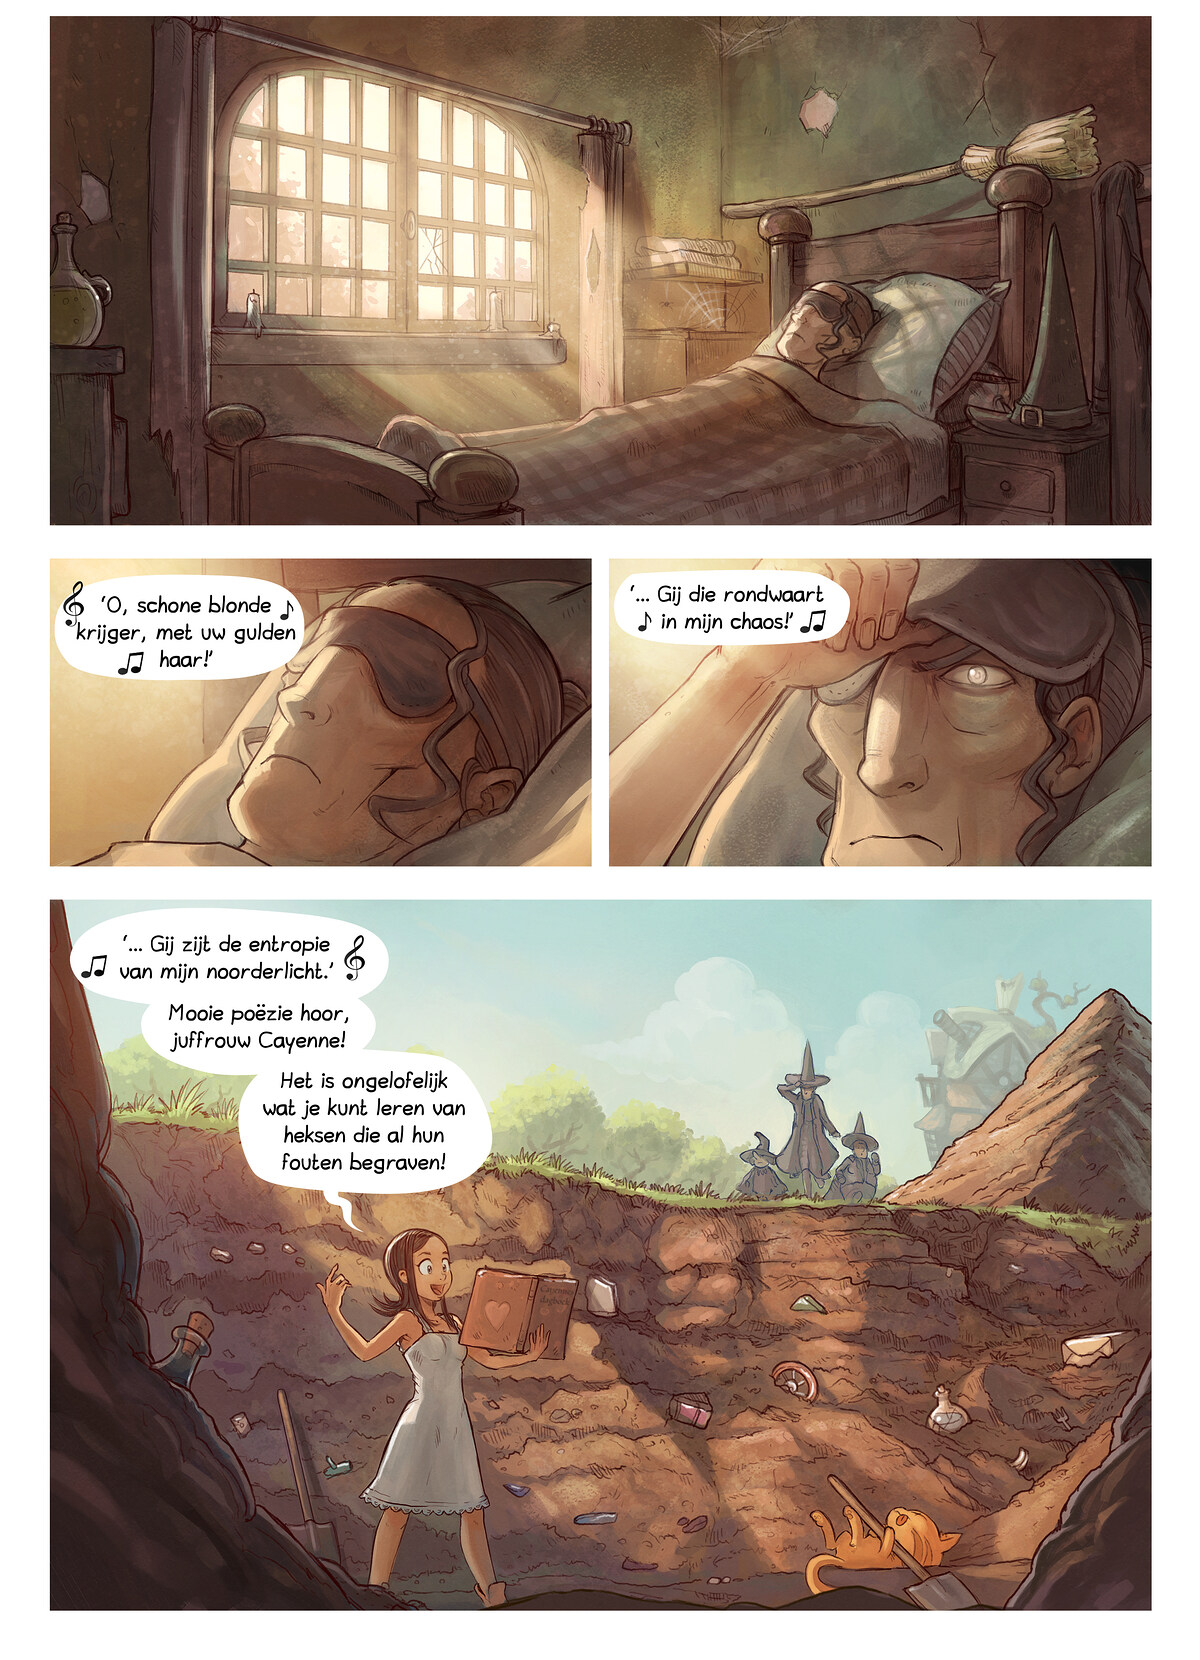 A webcomic page of Pepper&Carrot, aflevering 19 [nl], pagina 4